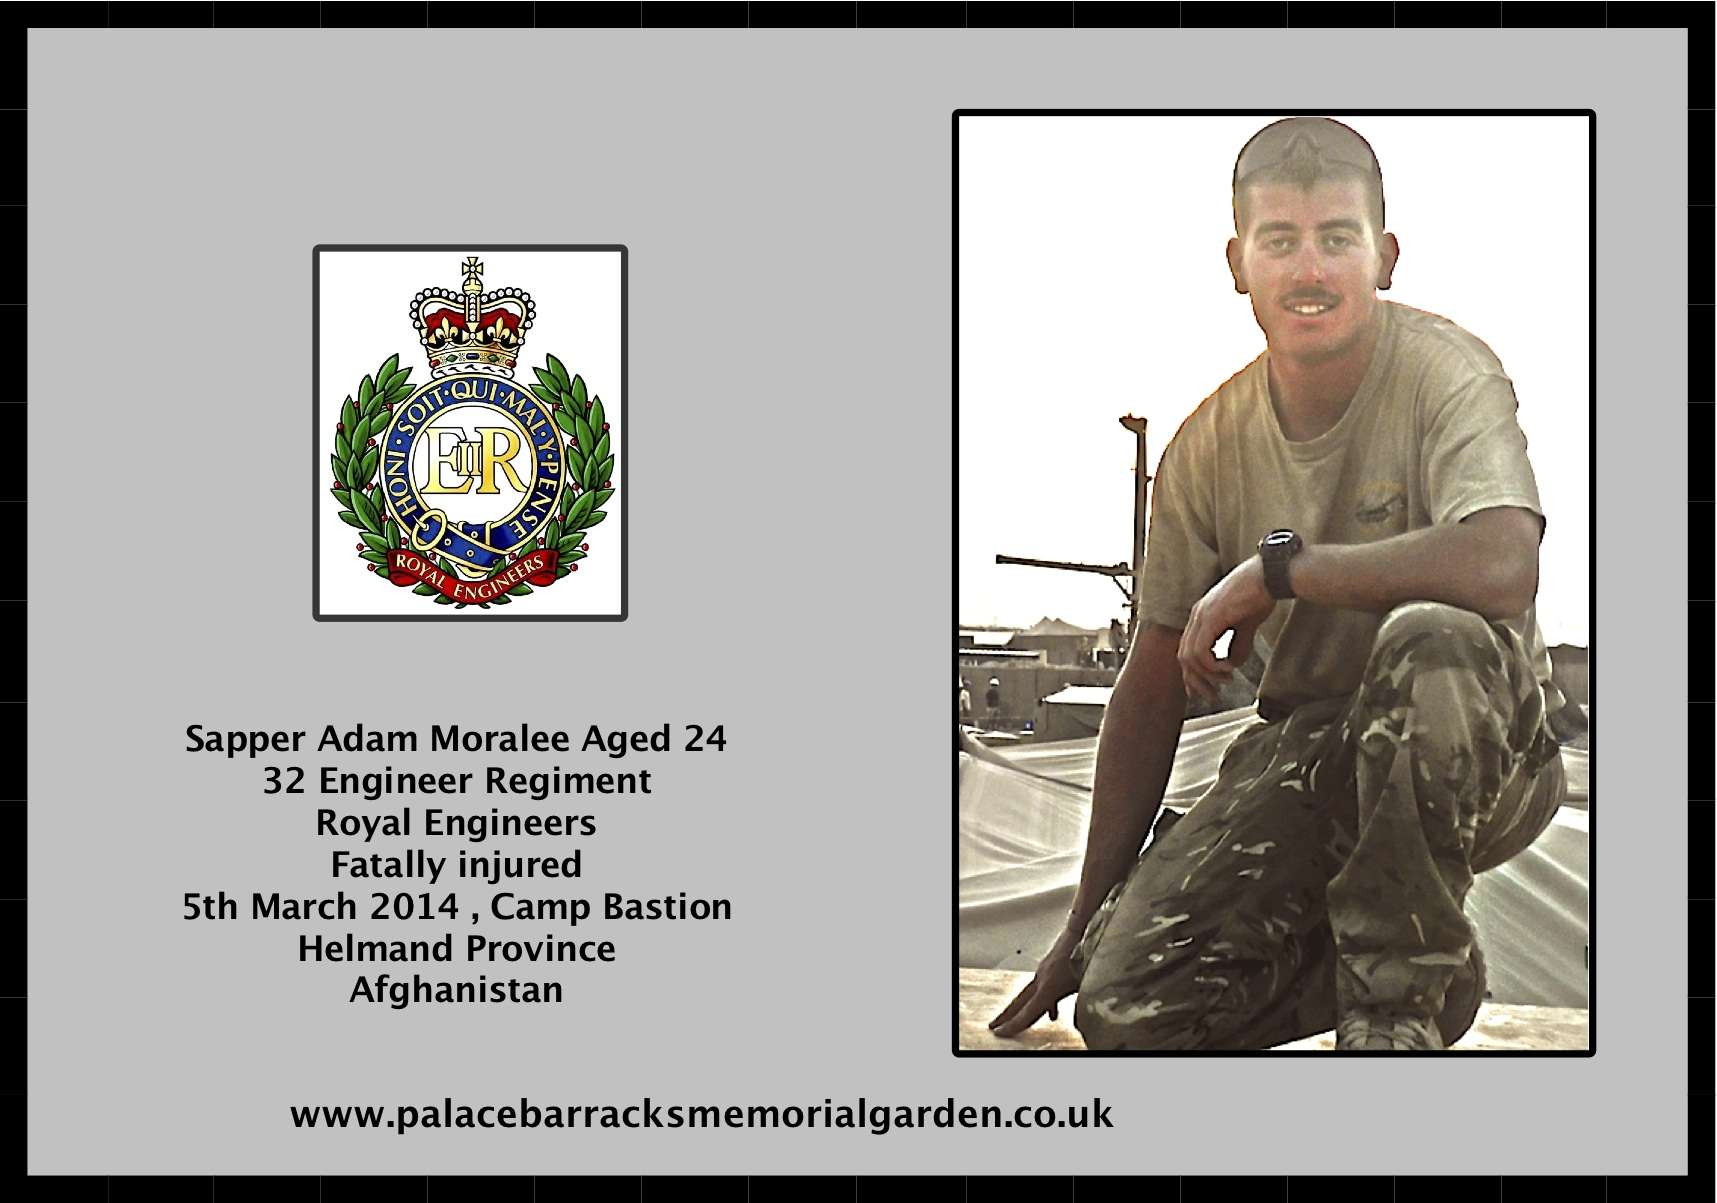 Royal Engineer Sapper Fatally Injured in Afghanistan 05 March 2014